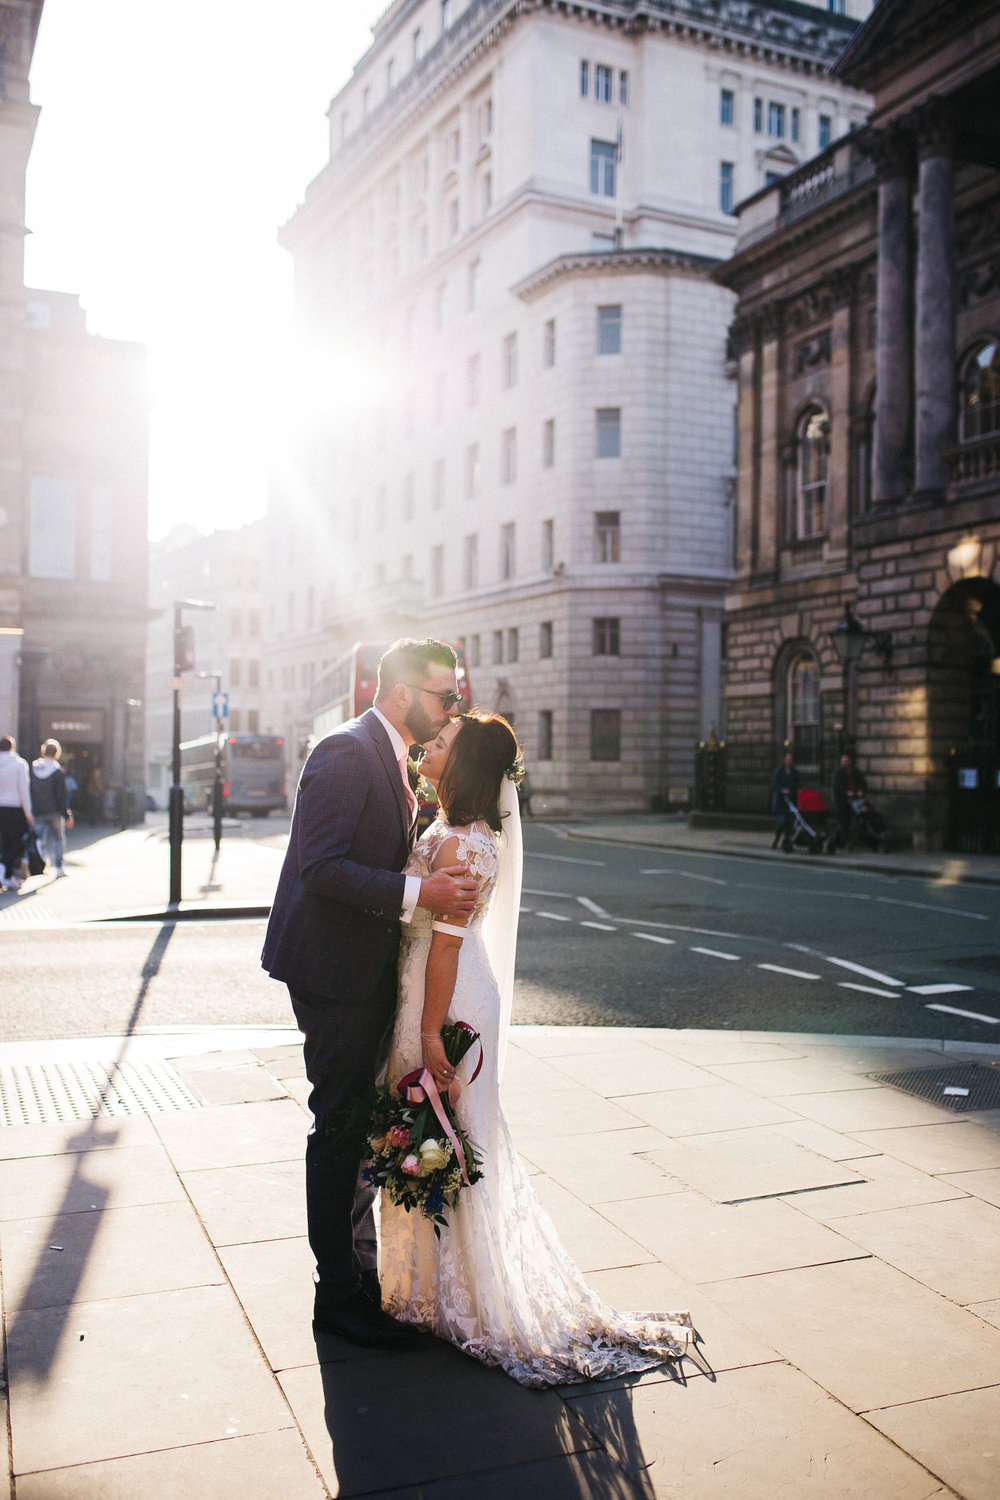 the bride and groom stand on the street and kiss - the light is beautiful. ceremony at st georges hall liverpool, oh me oh my wedding reception, north west wedding photographer